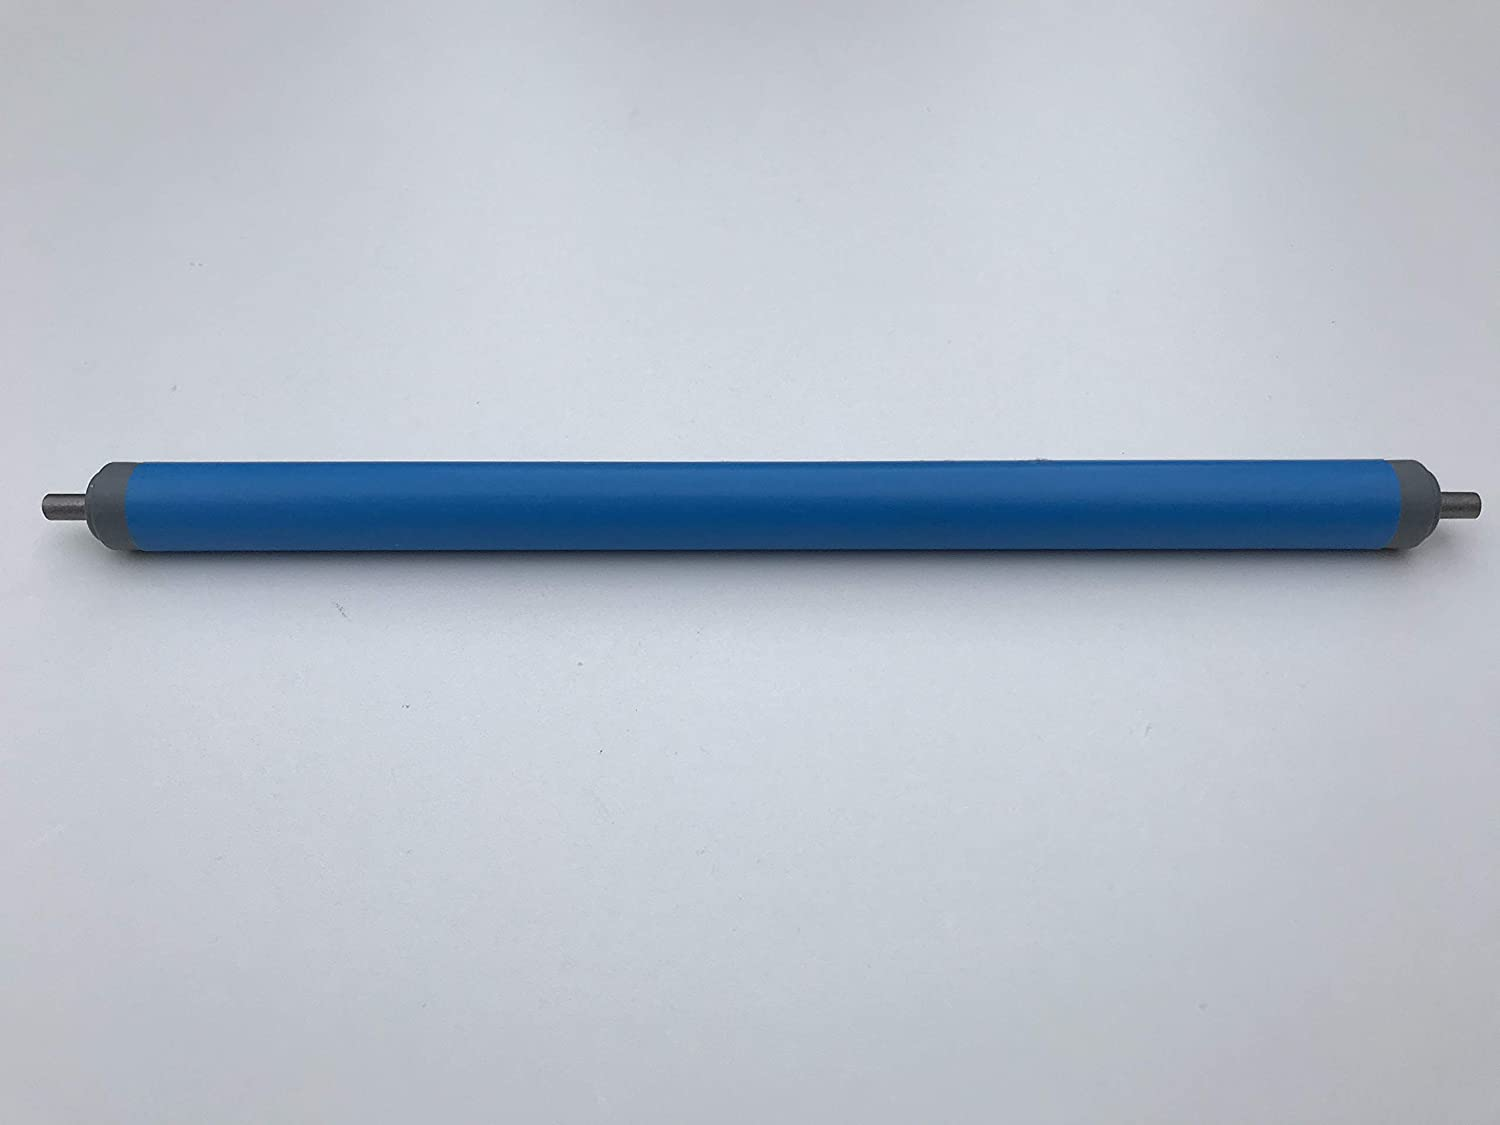 conveyor roller rollers plastic dia 20 mm with spring axle for gravity conveyor length: 100 mm